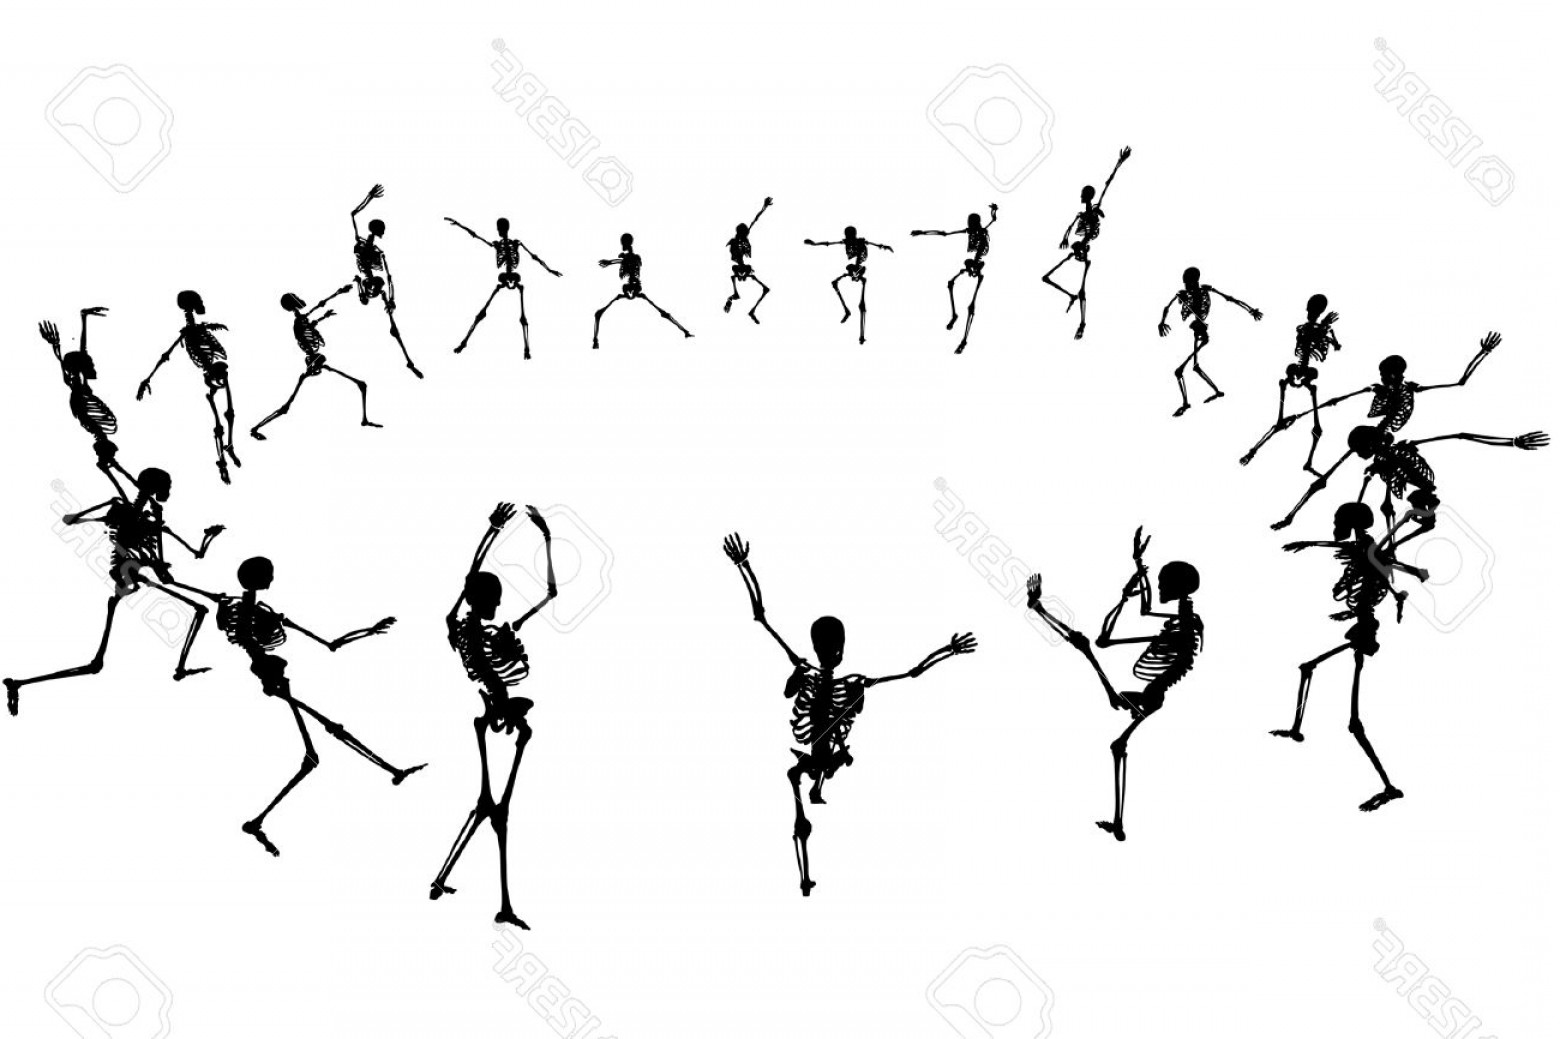 Vector Skeleton Circle Dancing: Photoeditable Vector Skeleton Silhouettes Dancing In A Ring With Each Skeleton As A Separate Object